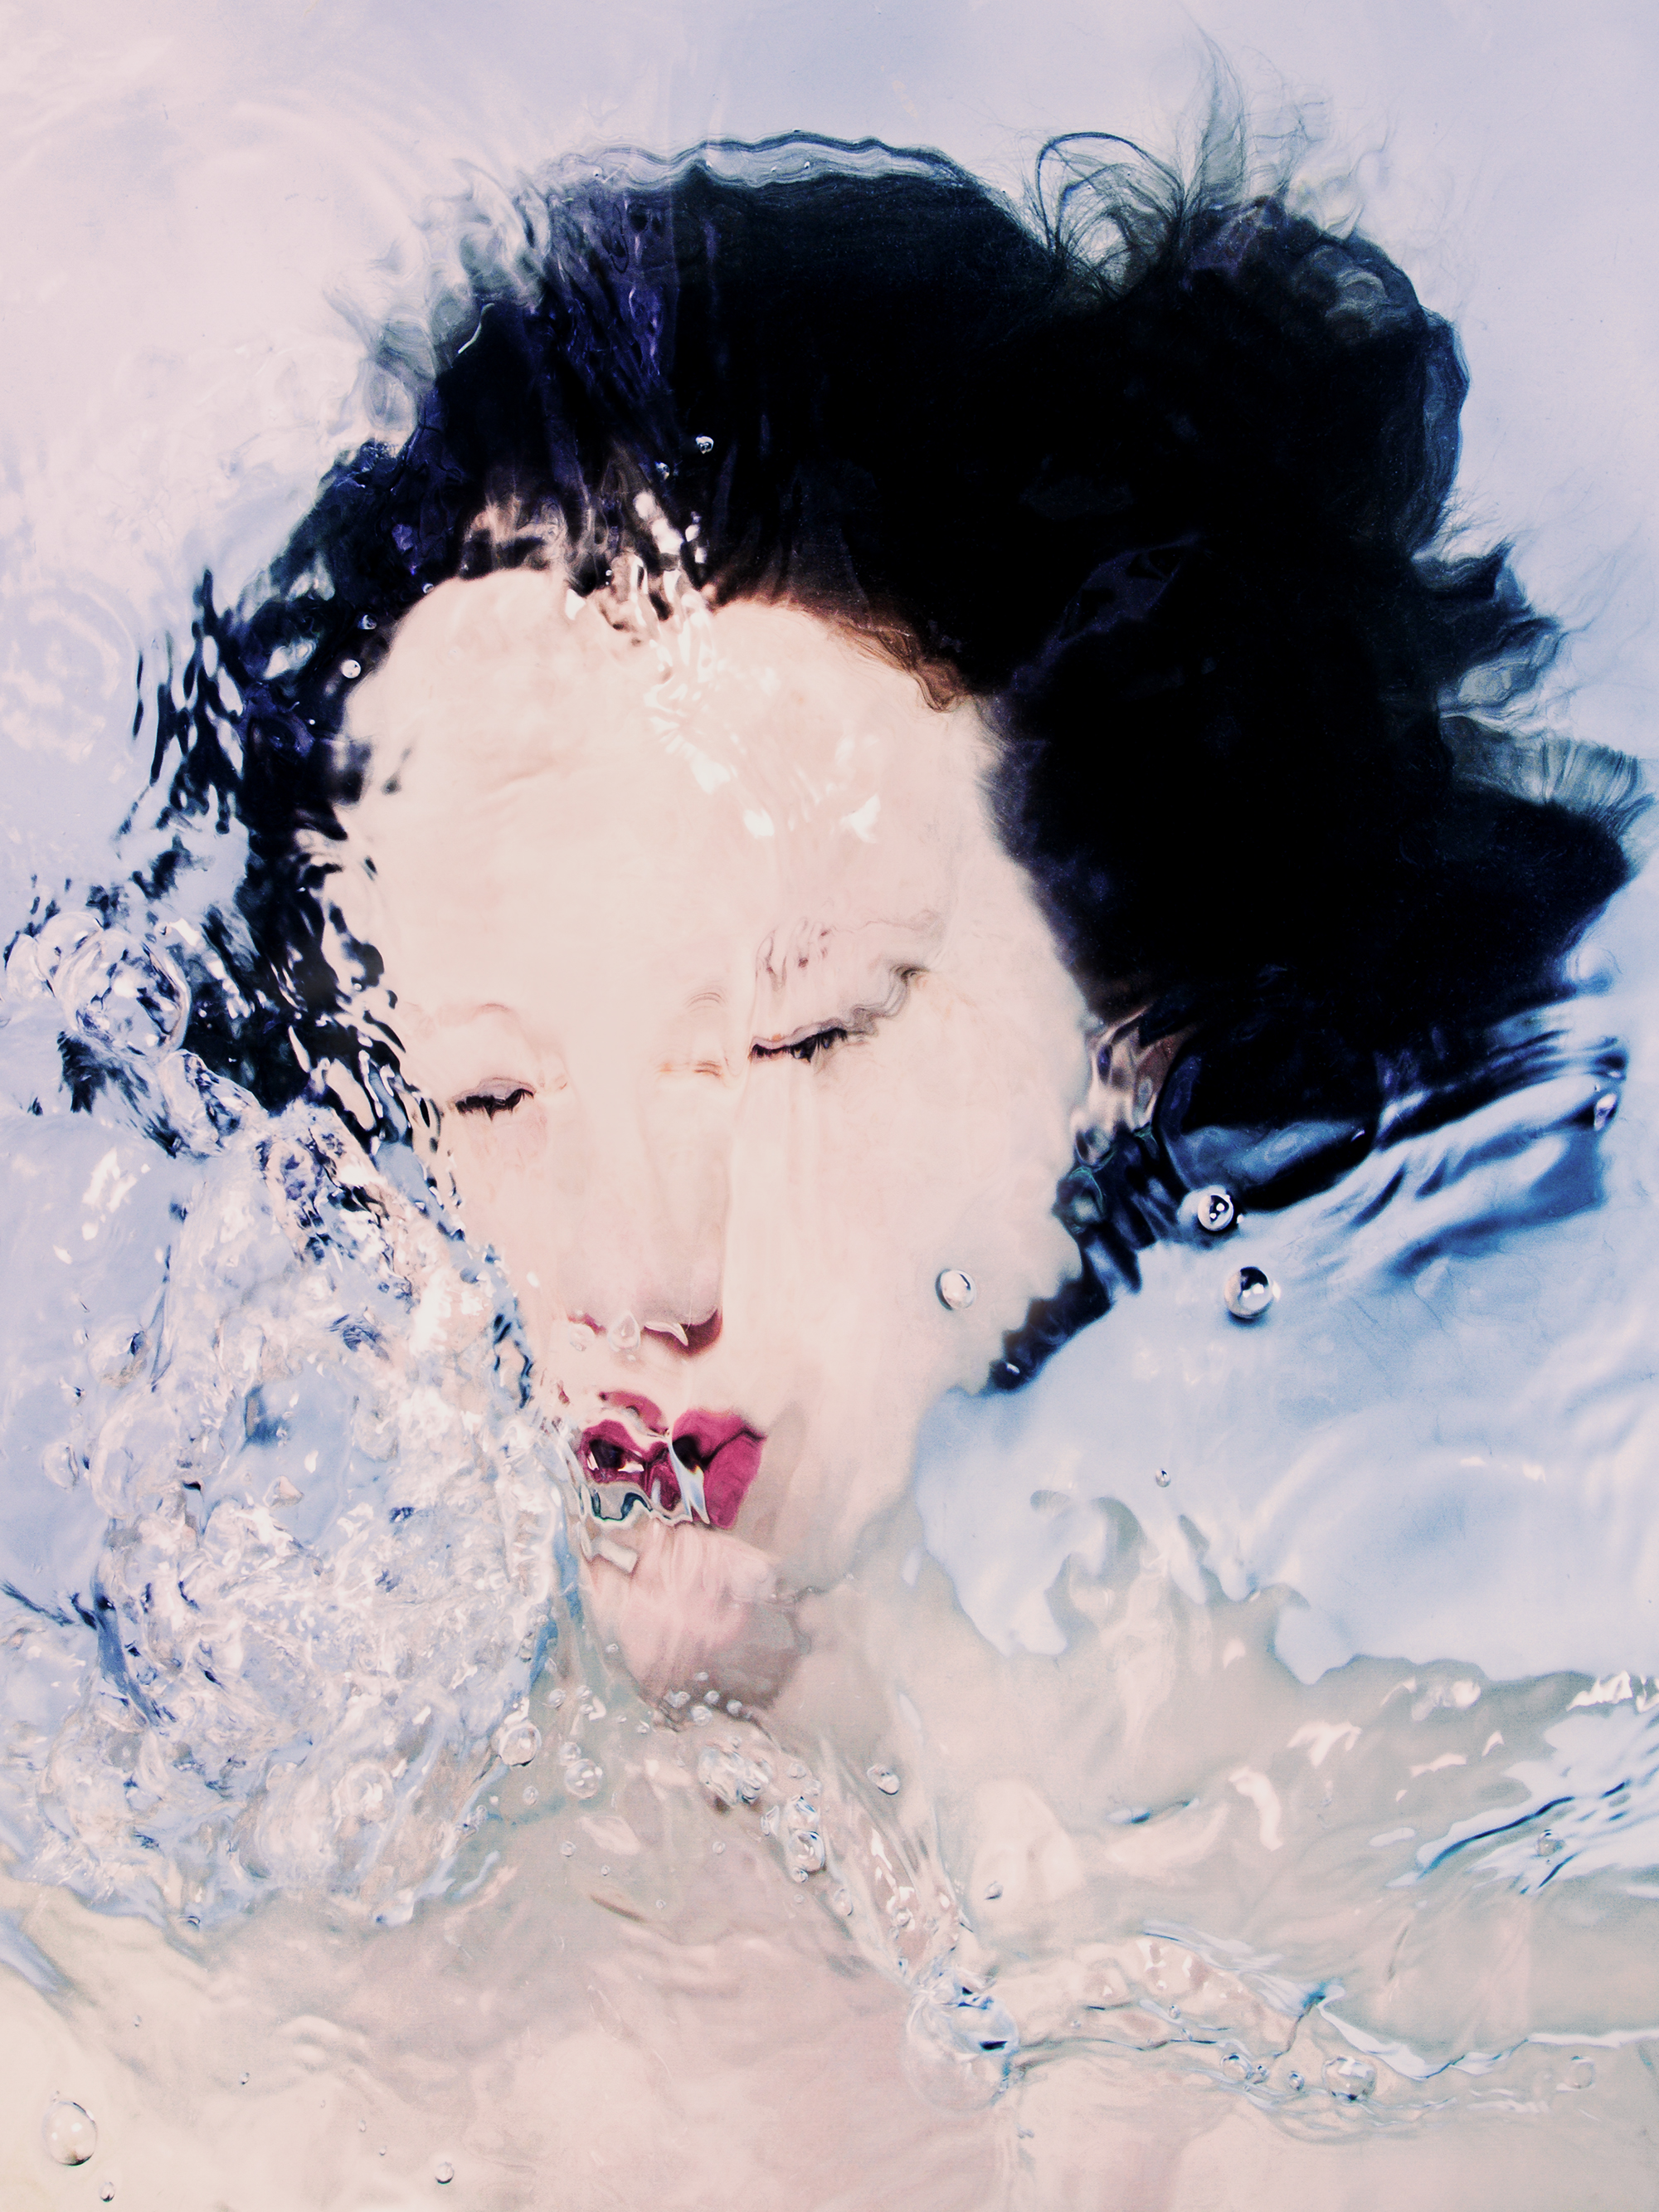 I-don't-know-you-anymore-Submerged-Portrait-Matthew-Coleman-Photography-3